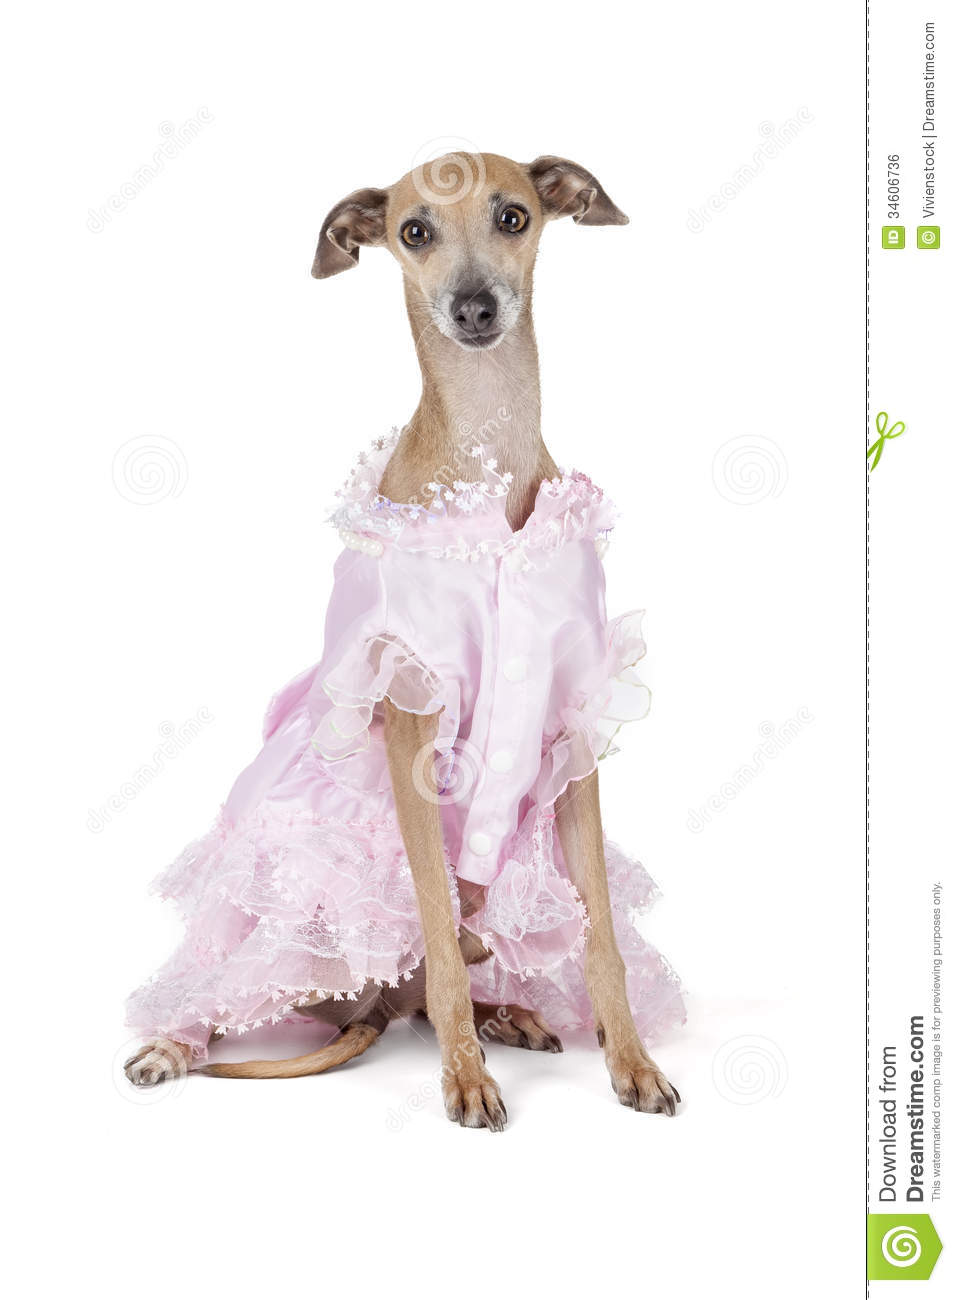 White christmas wedding dress - Italian Greyhound In A Dress On A White Background In Studio